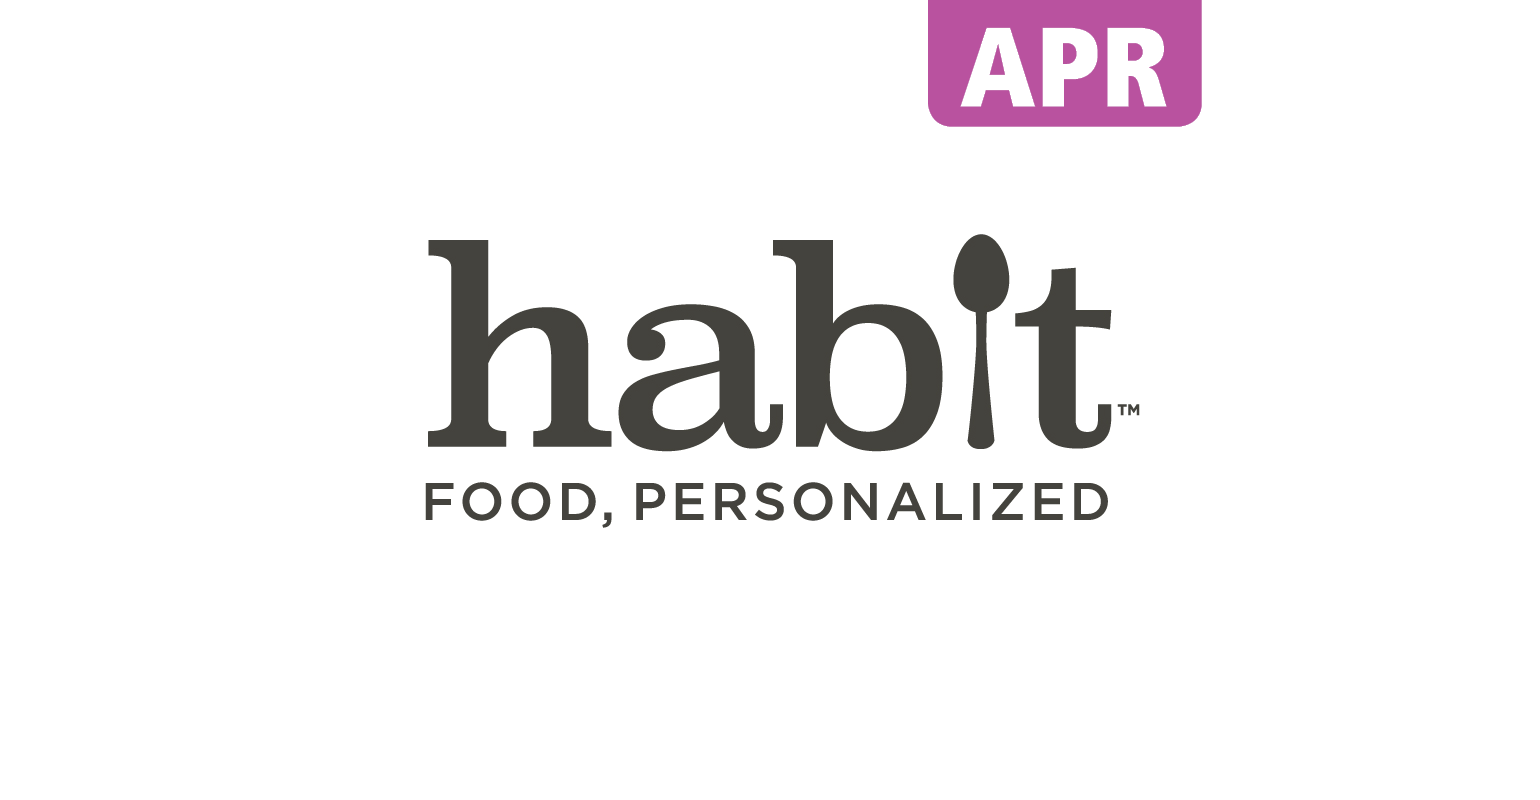 NBJ Award for Innovation goes to Habit.